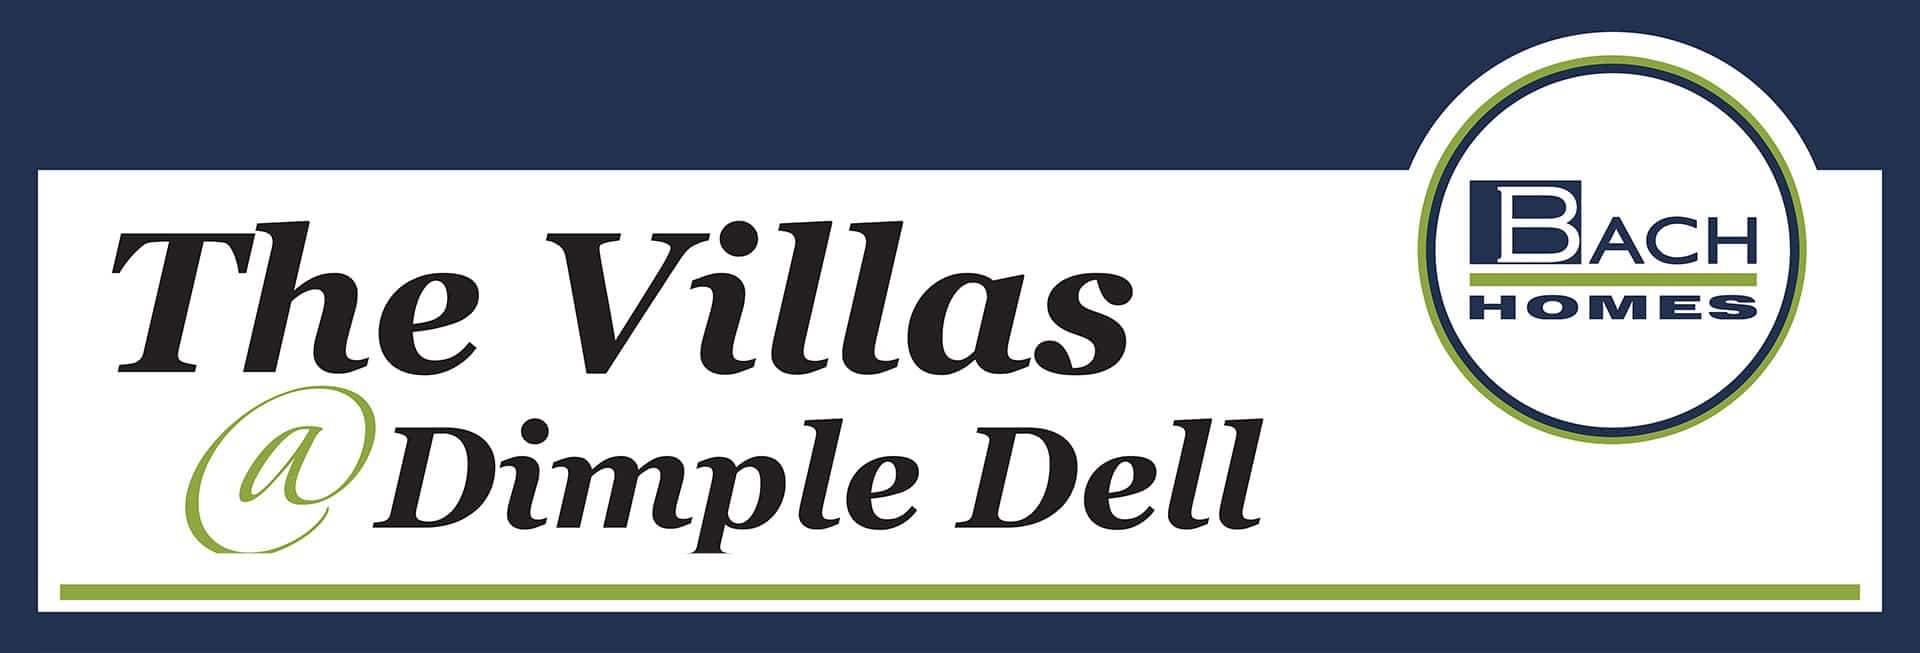 The Villas at Dimple Dell